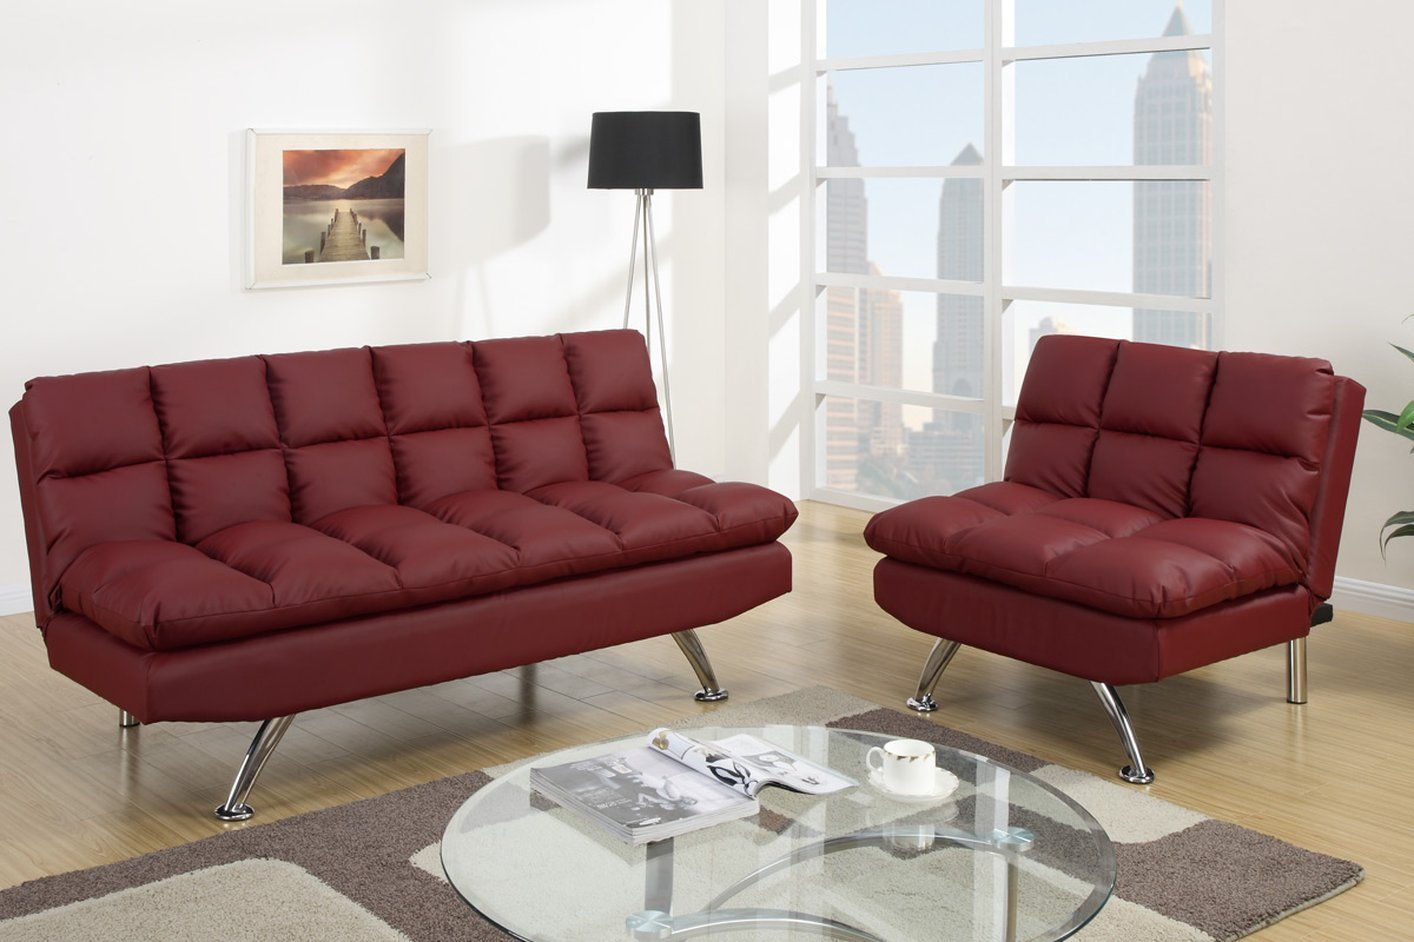 Sofa Bed And Chair Set Vision Sec Rainbow Sectional Sofa